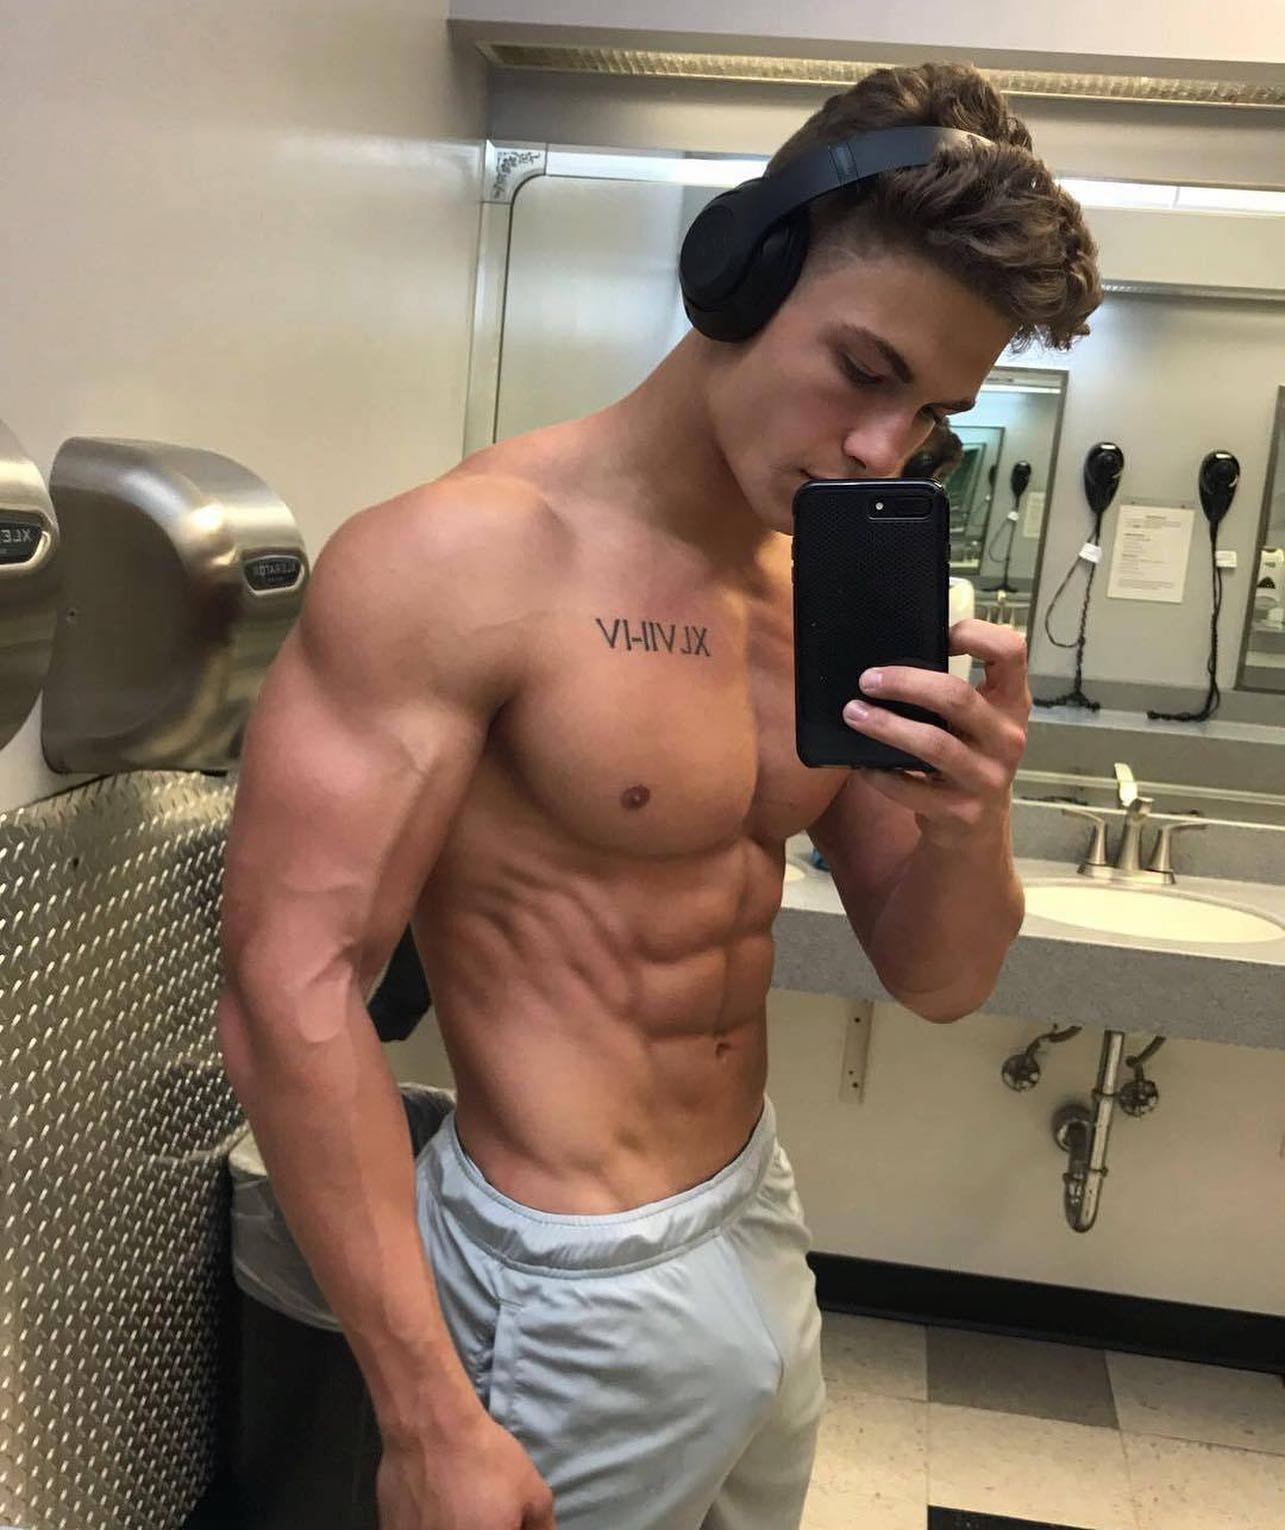 #men #selfie #muscular #tatoo #twinks #bulge